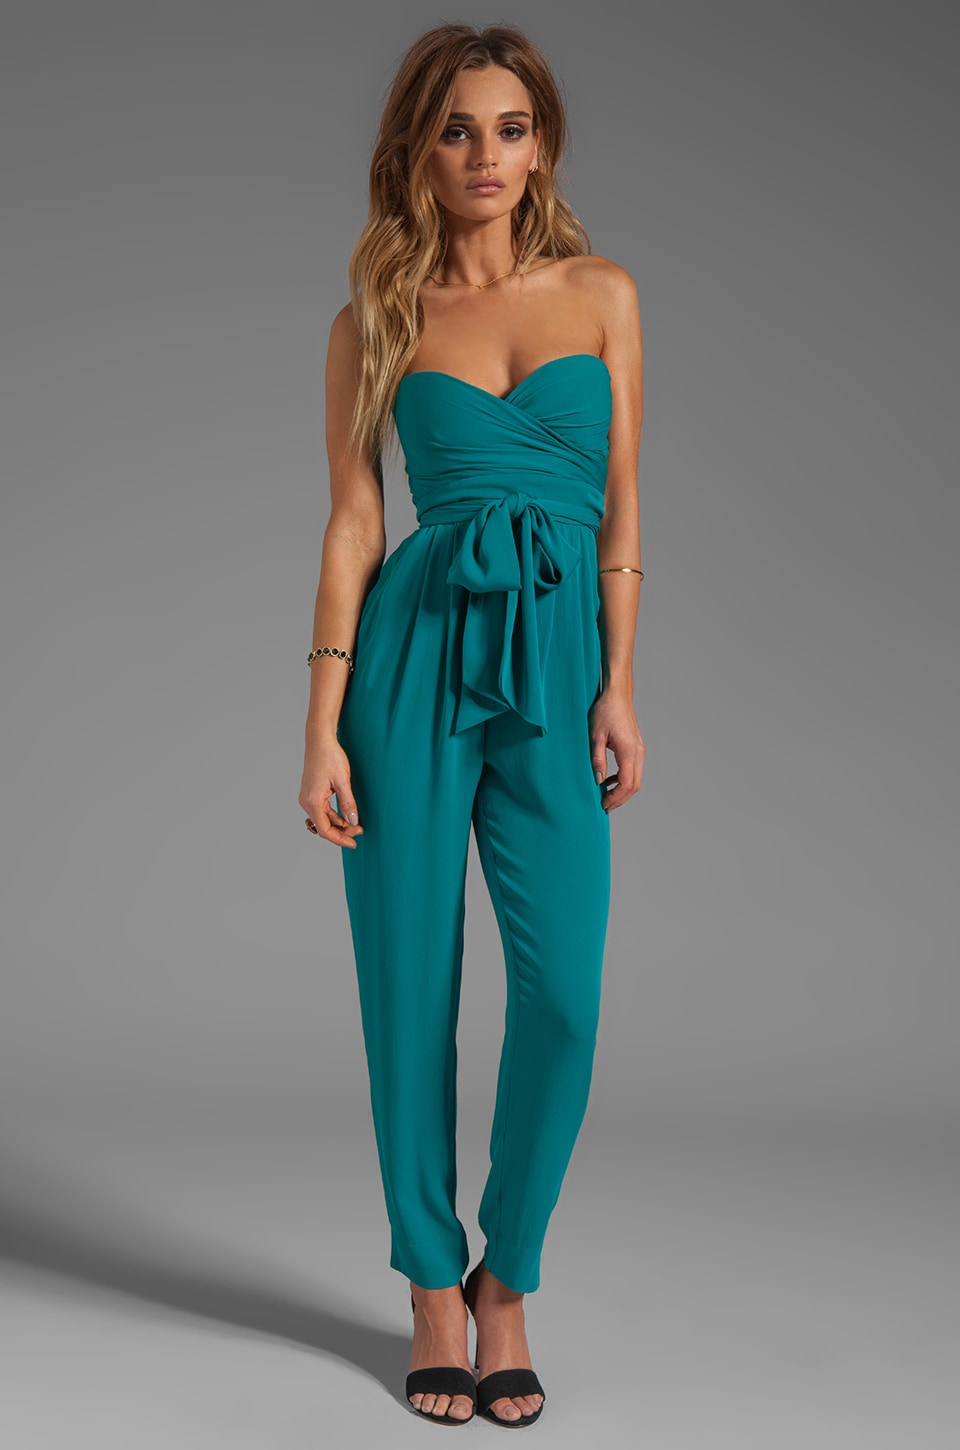 Catherine Malandrino Strapless Bustier Jumpsuit in Belize